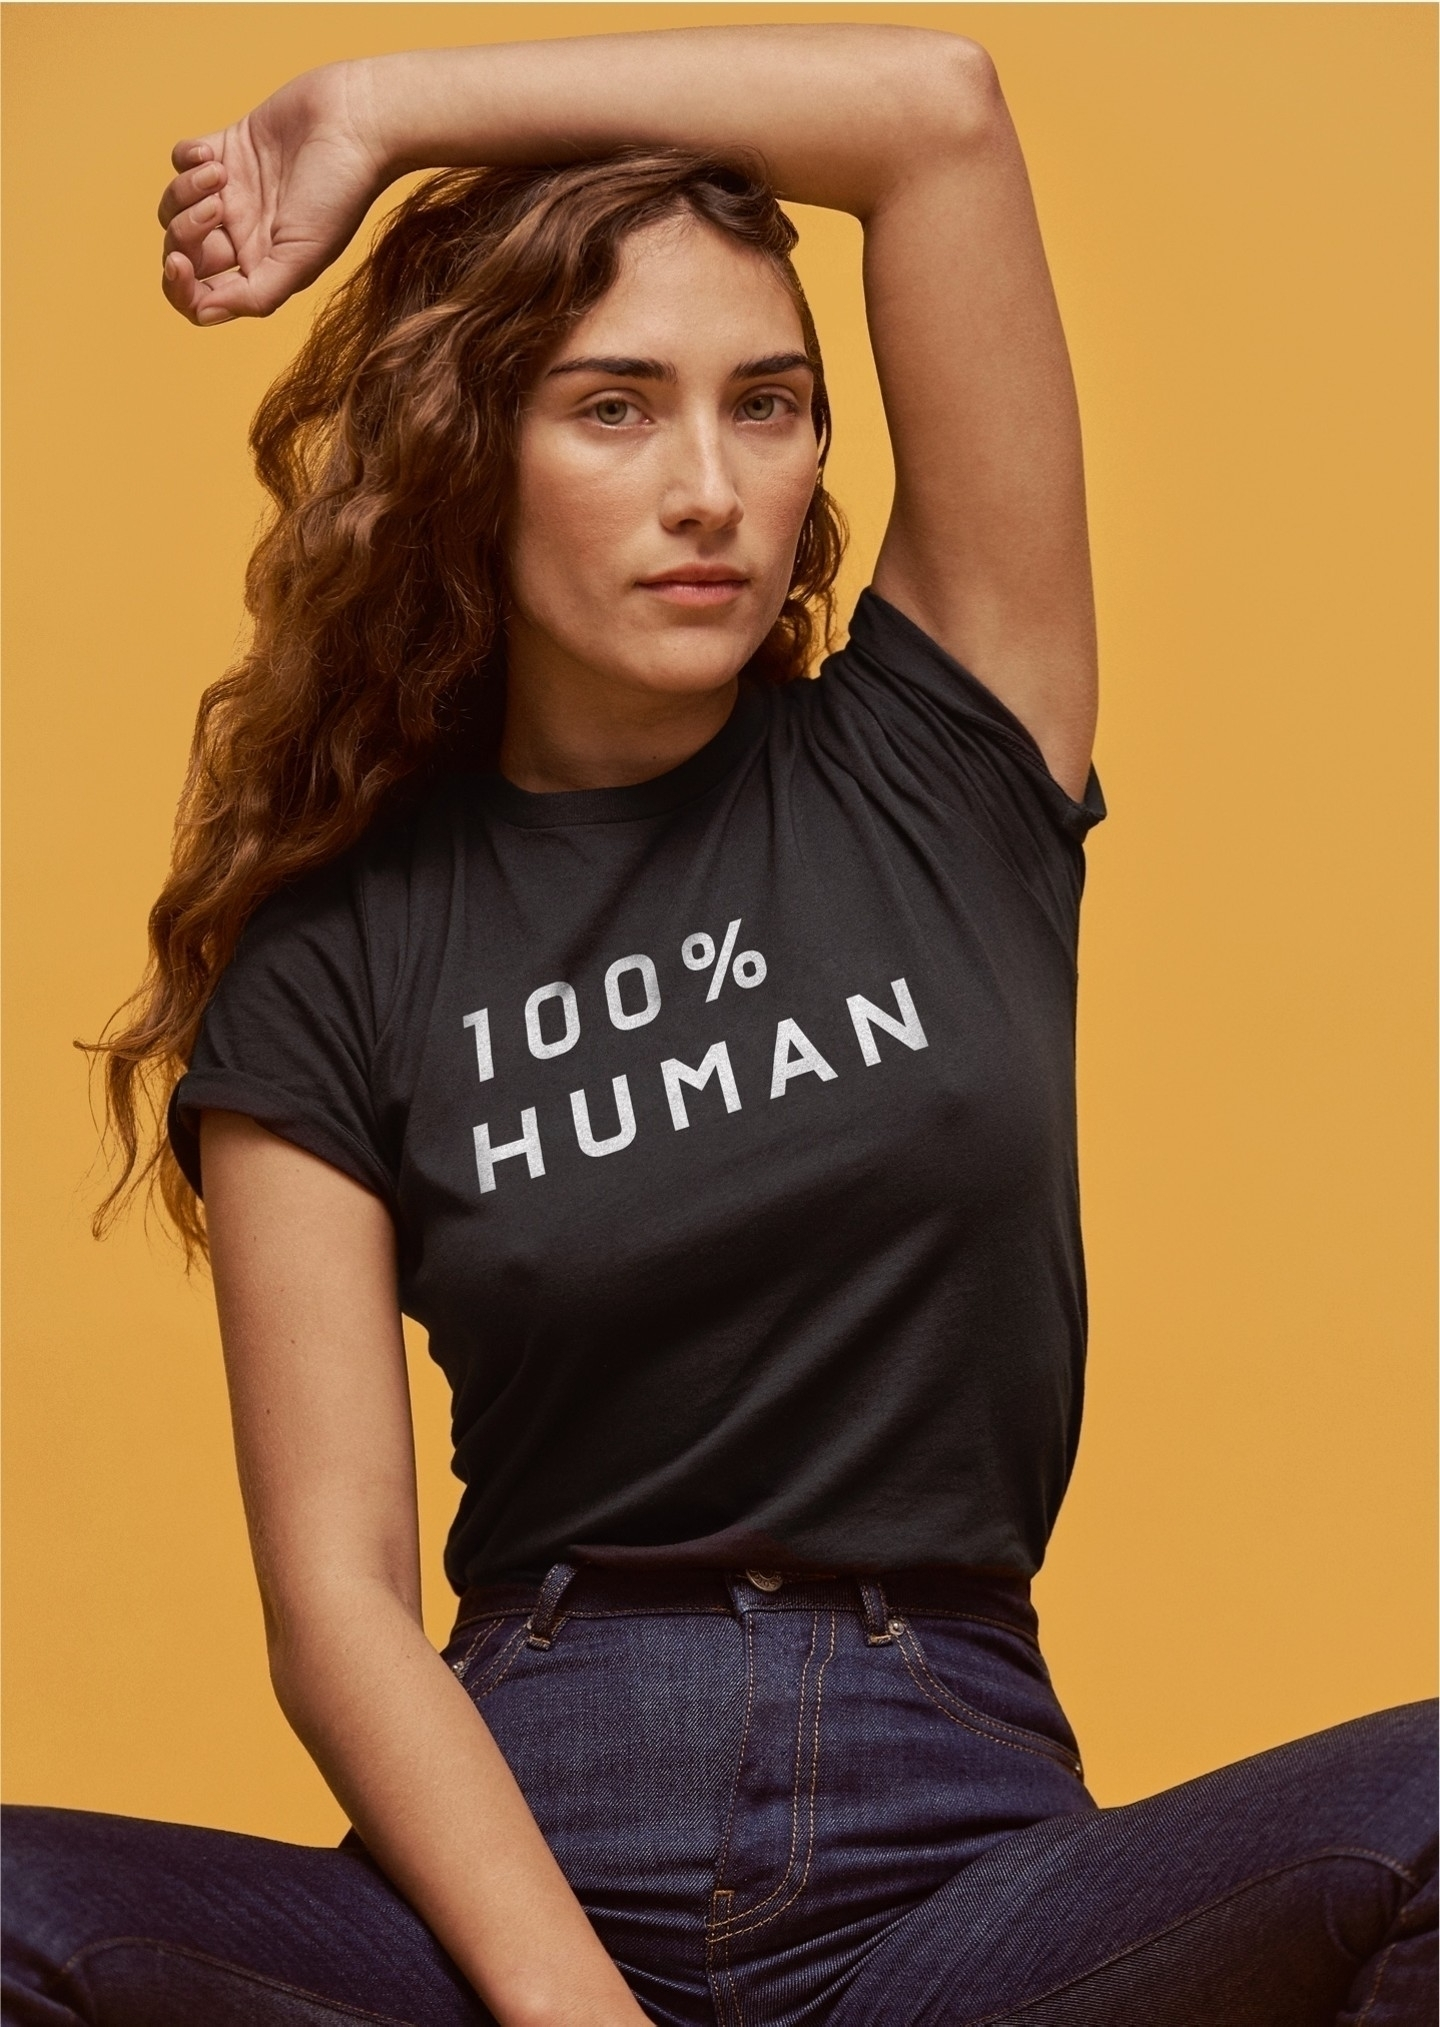 100% Human launched Everlane to - lawnparty | ello